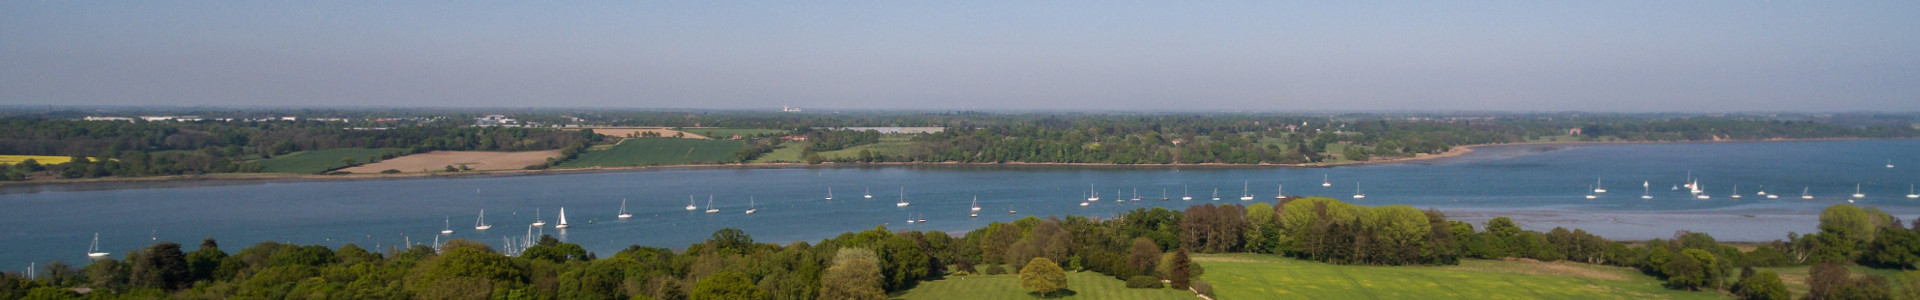 The River Orwell, overlooked by Ipswich High School's 84-acre campus